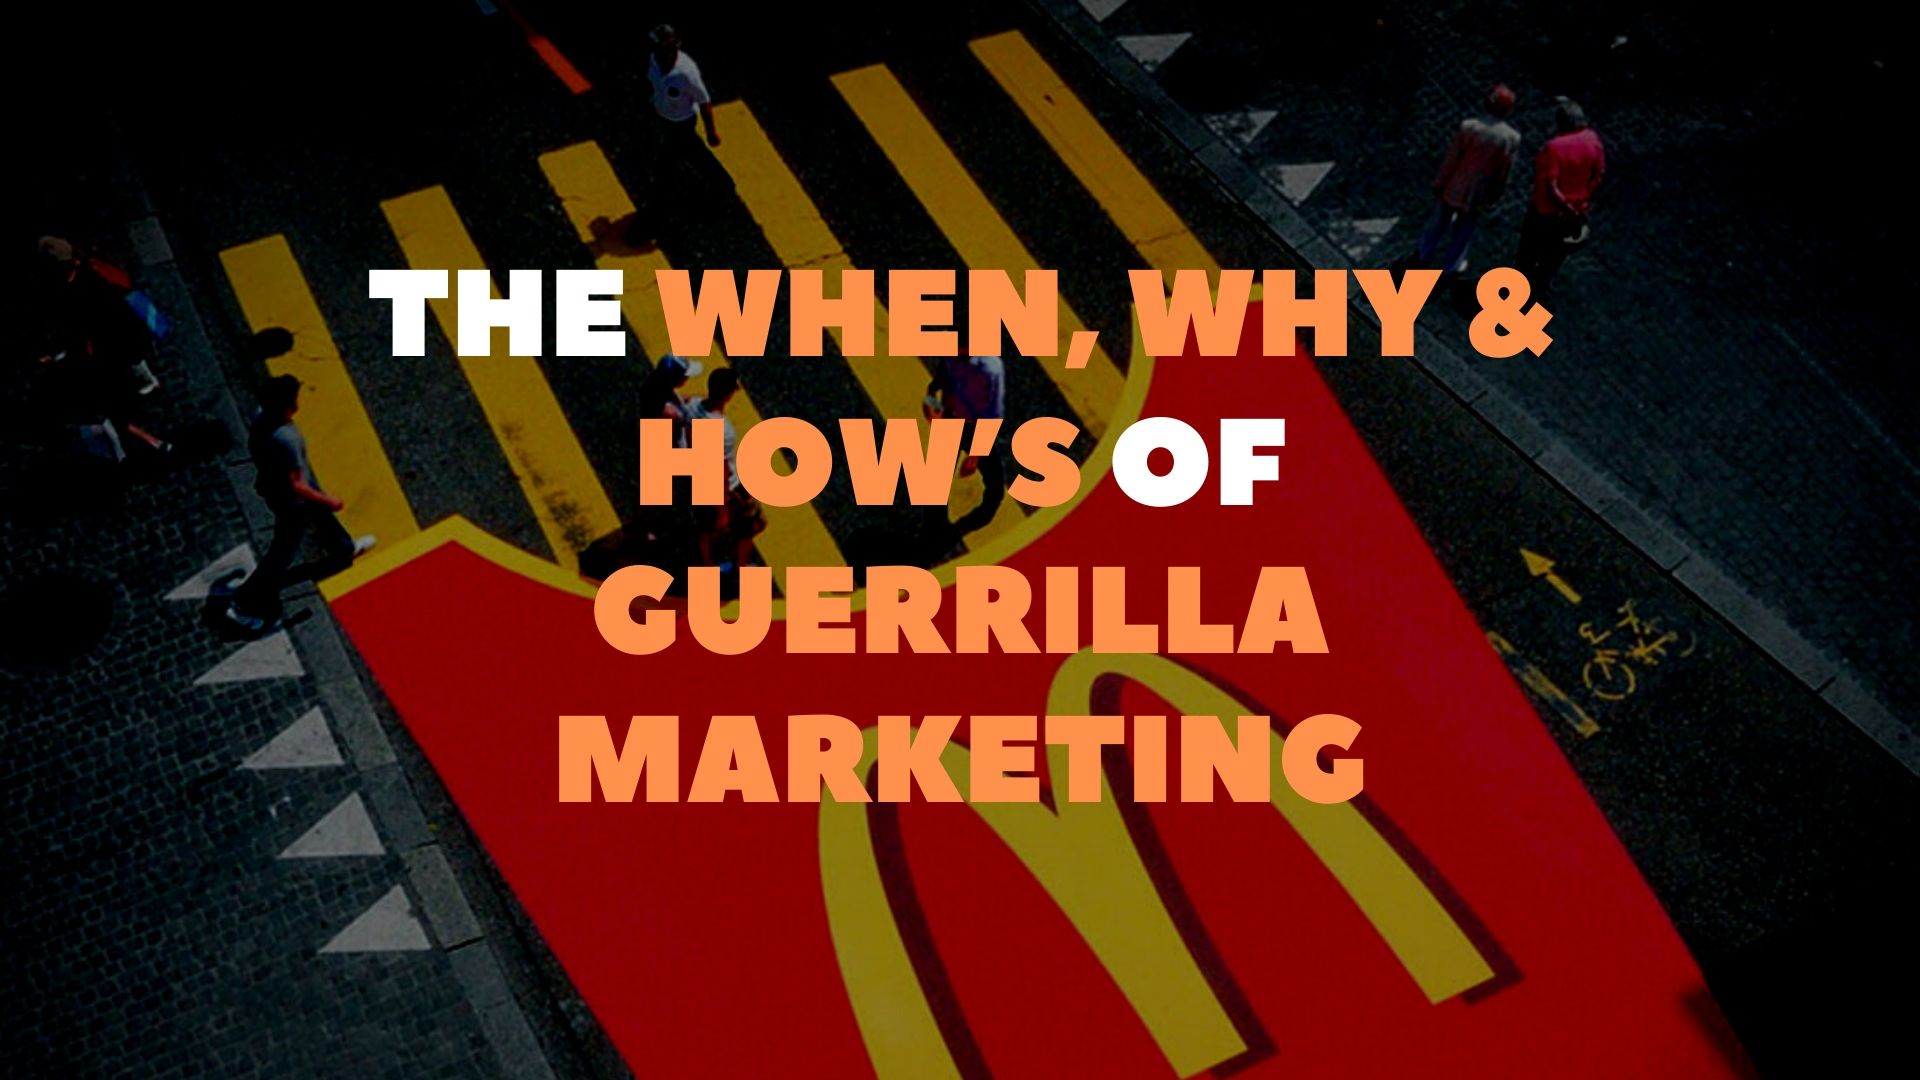 The when, why, and how's of guerrilla marketing